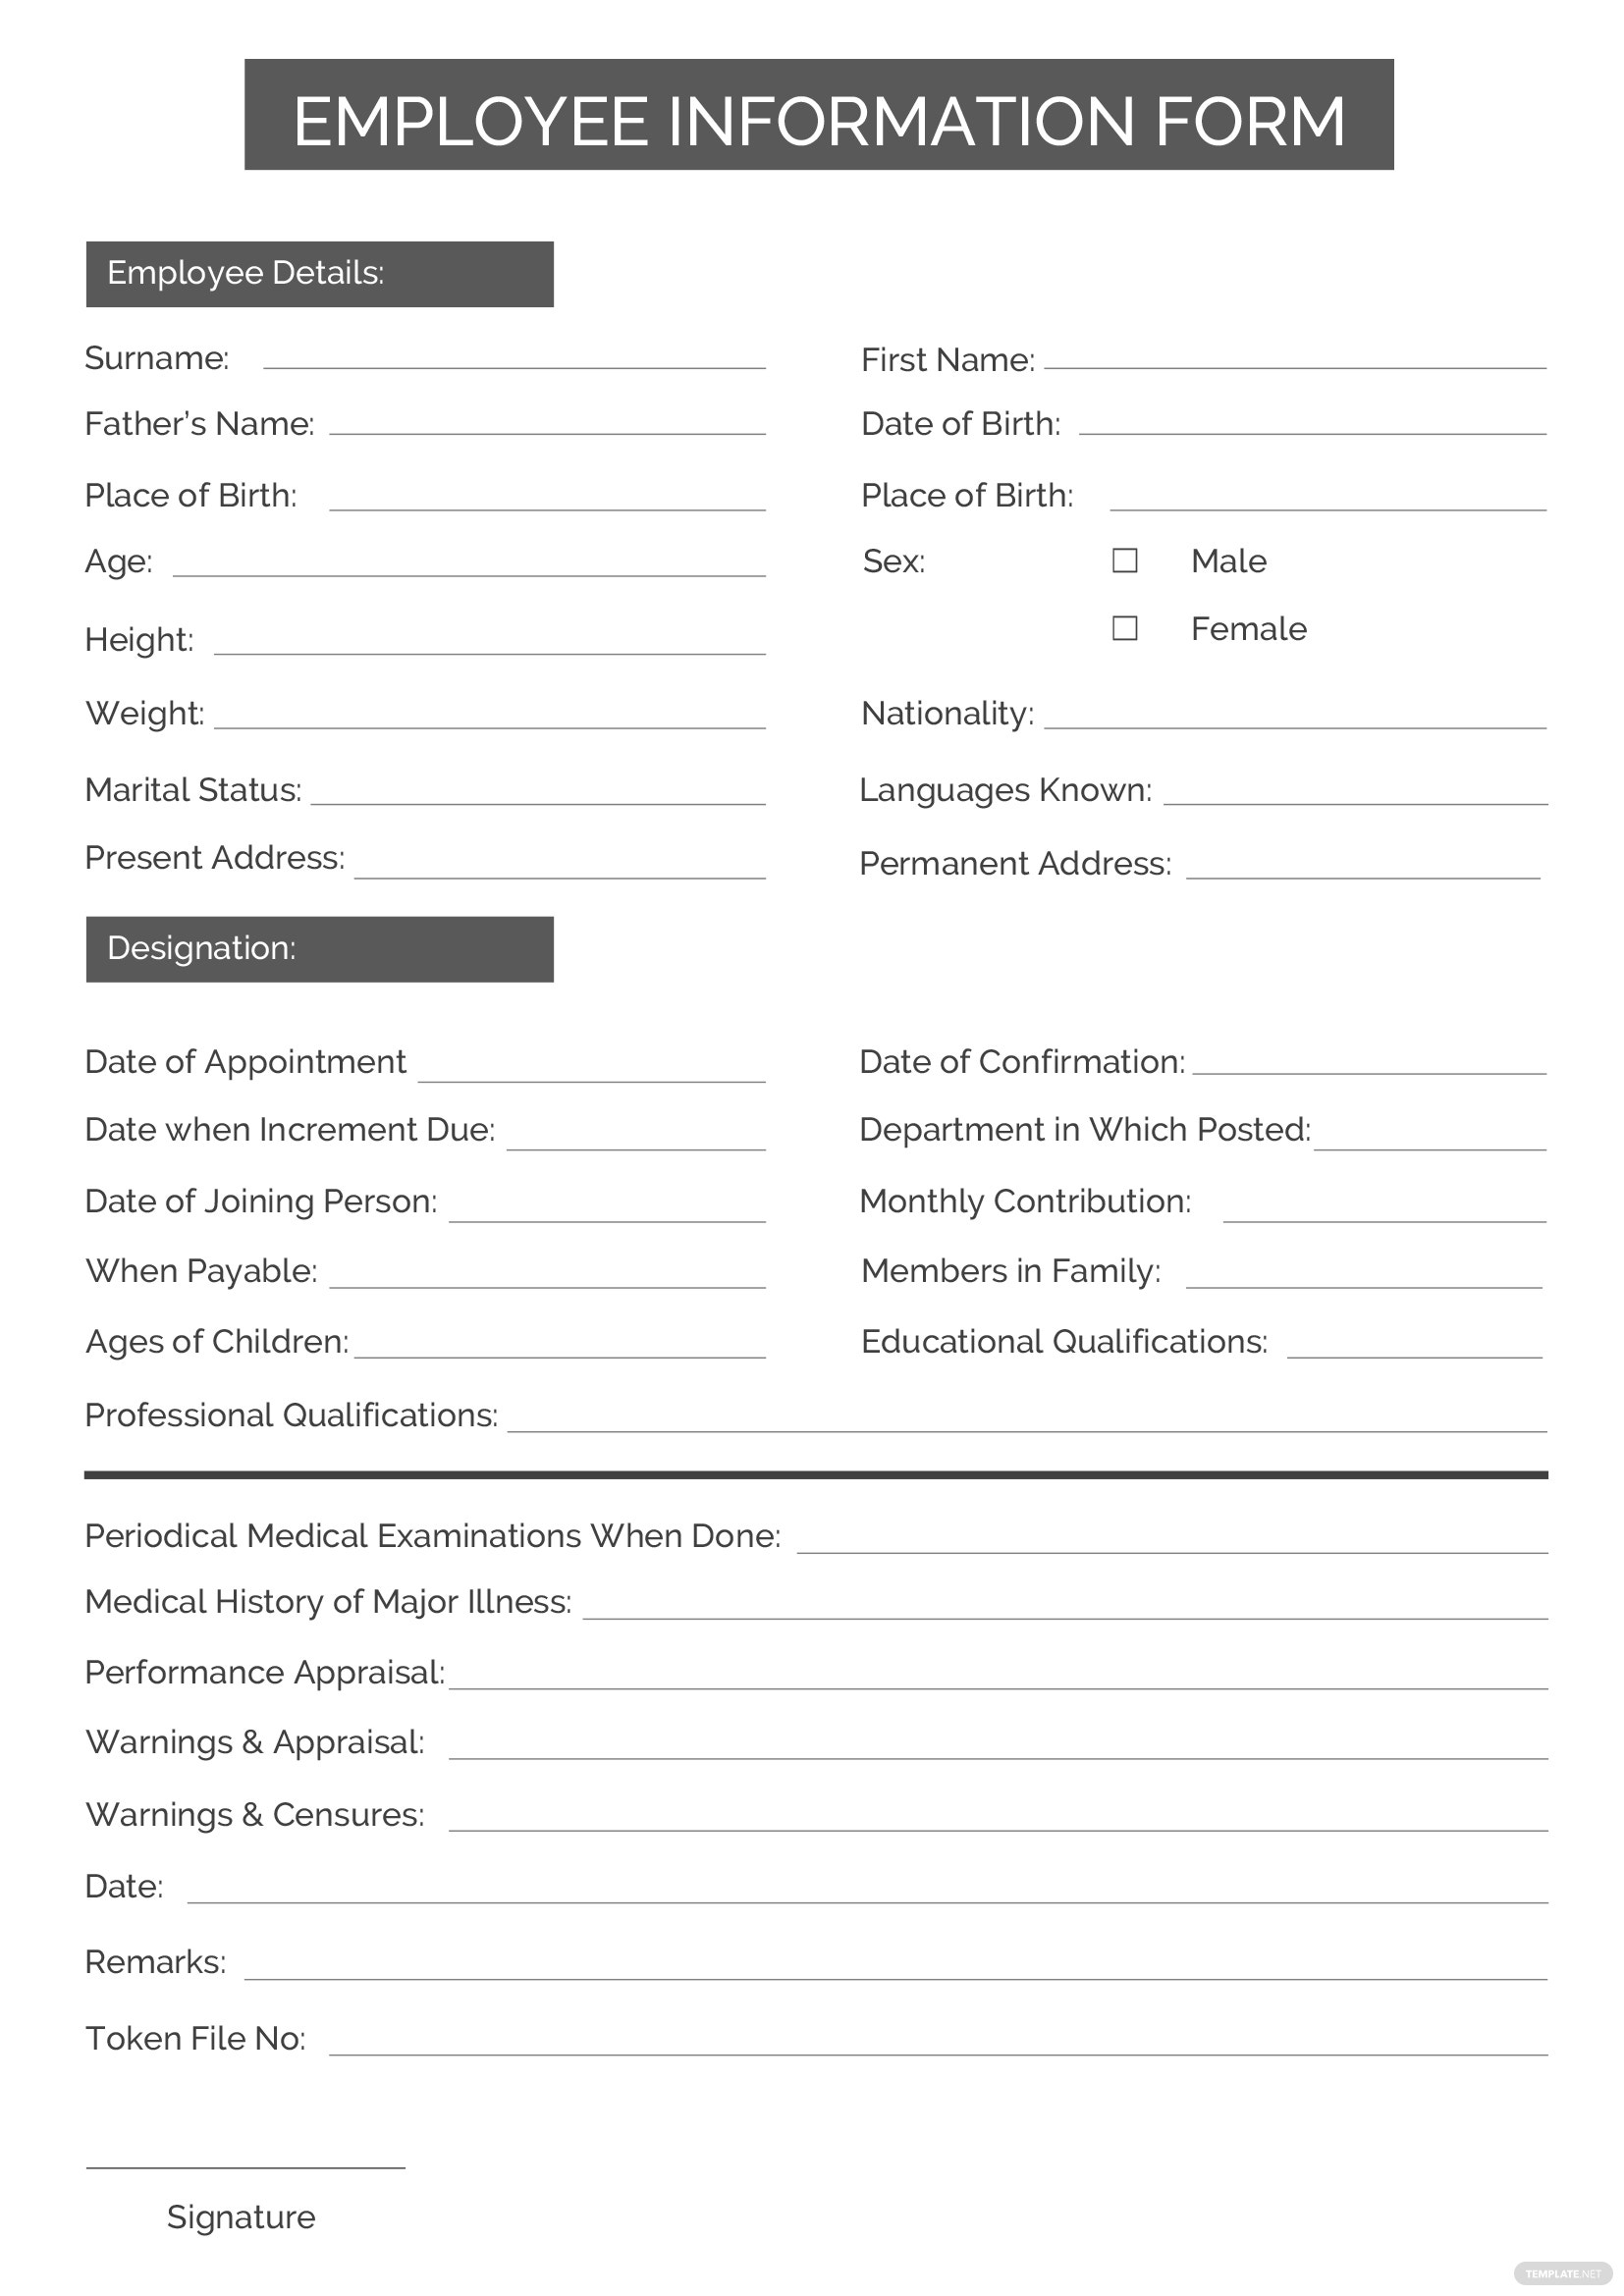 employee information form template in microsoft word